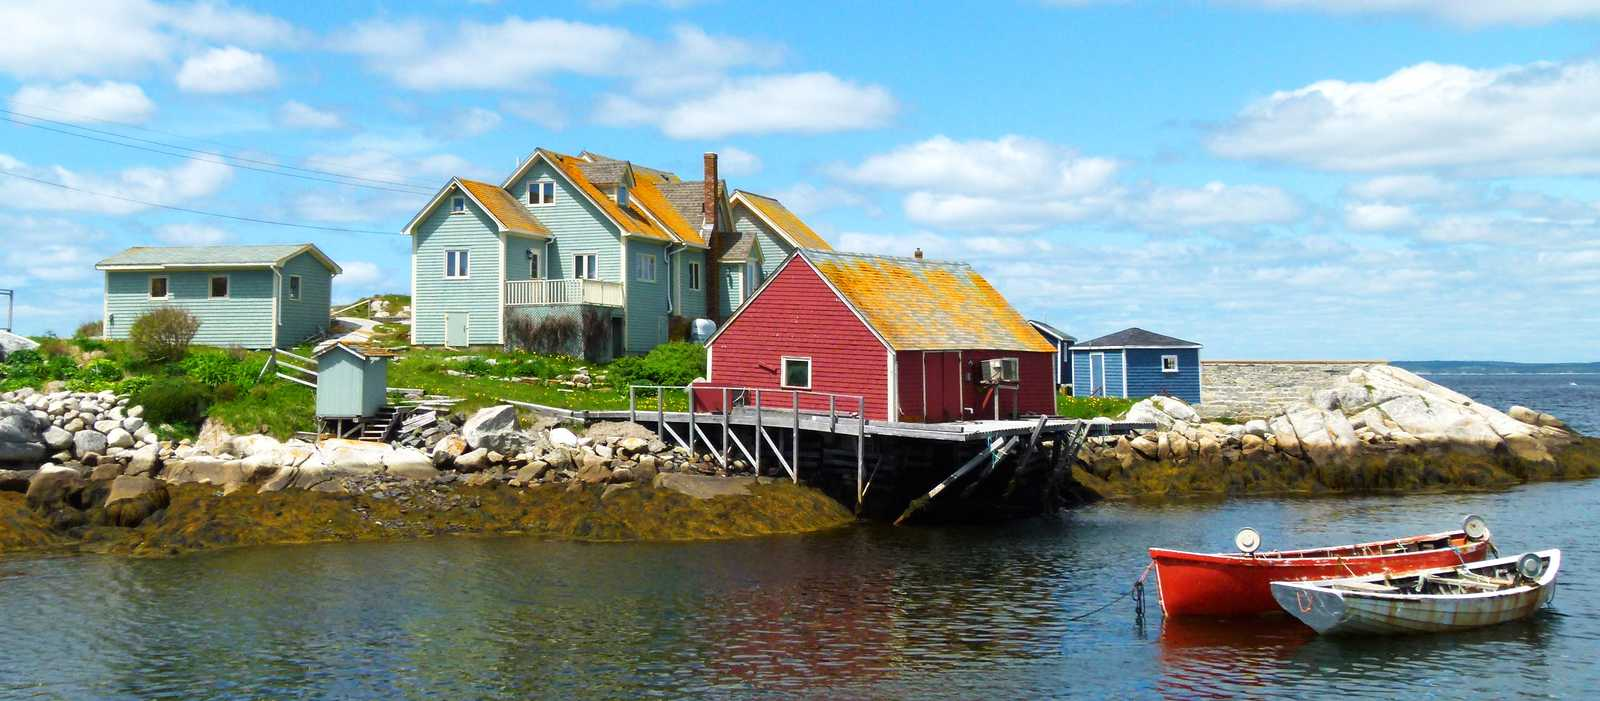 Häuser in Peggy's Cove